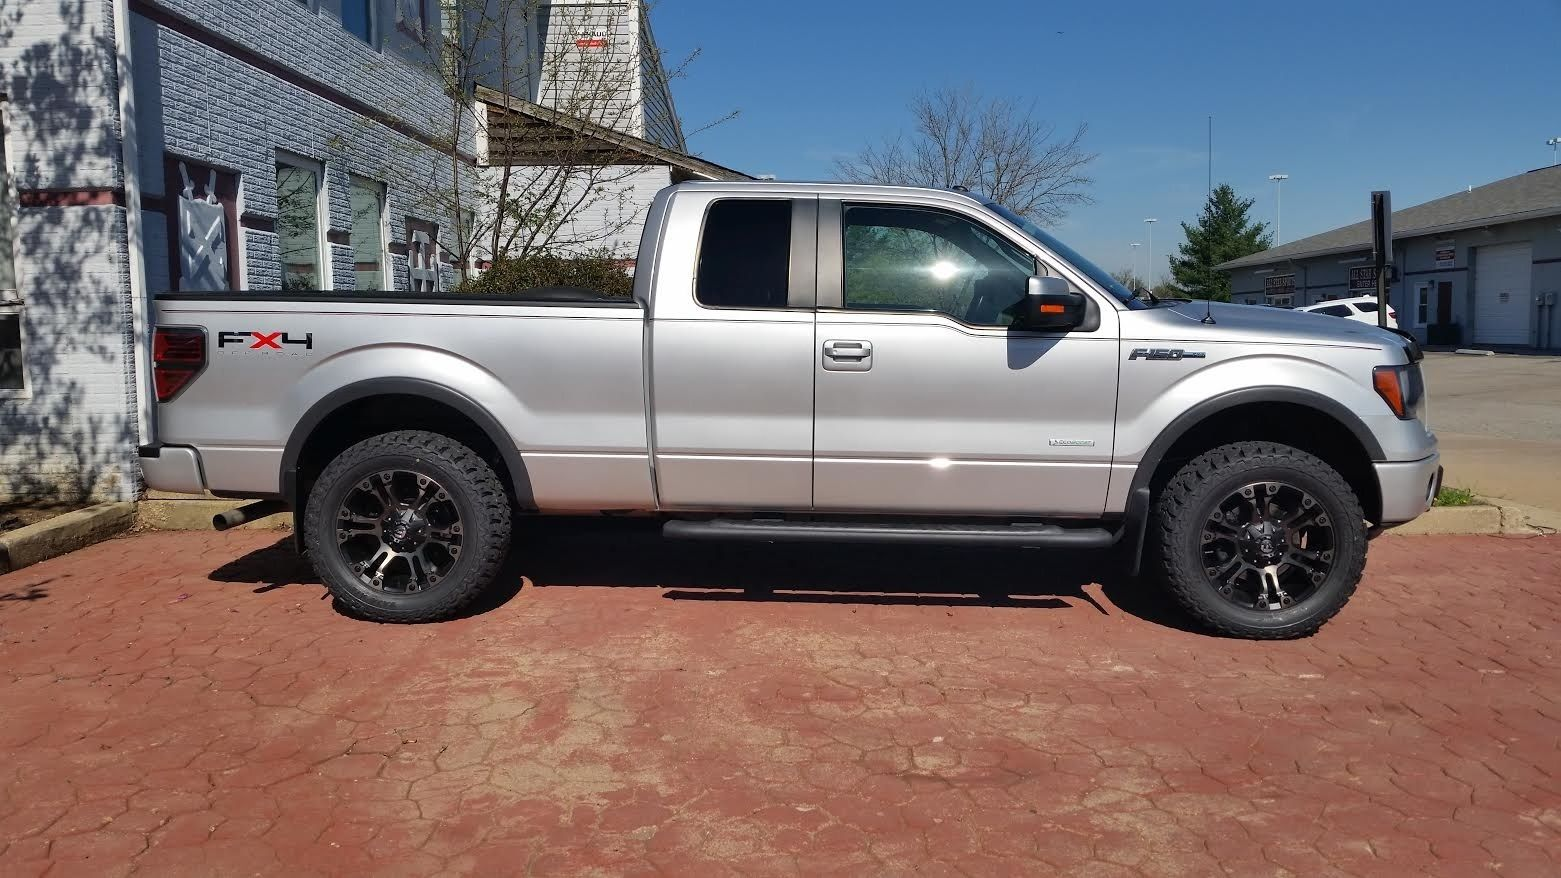 F150 fuel vapor rims and leveling kit